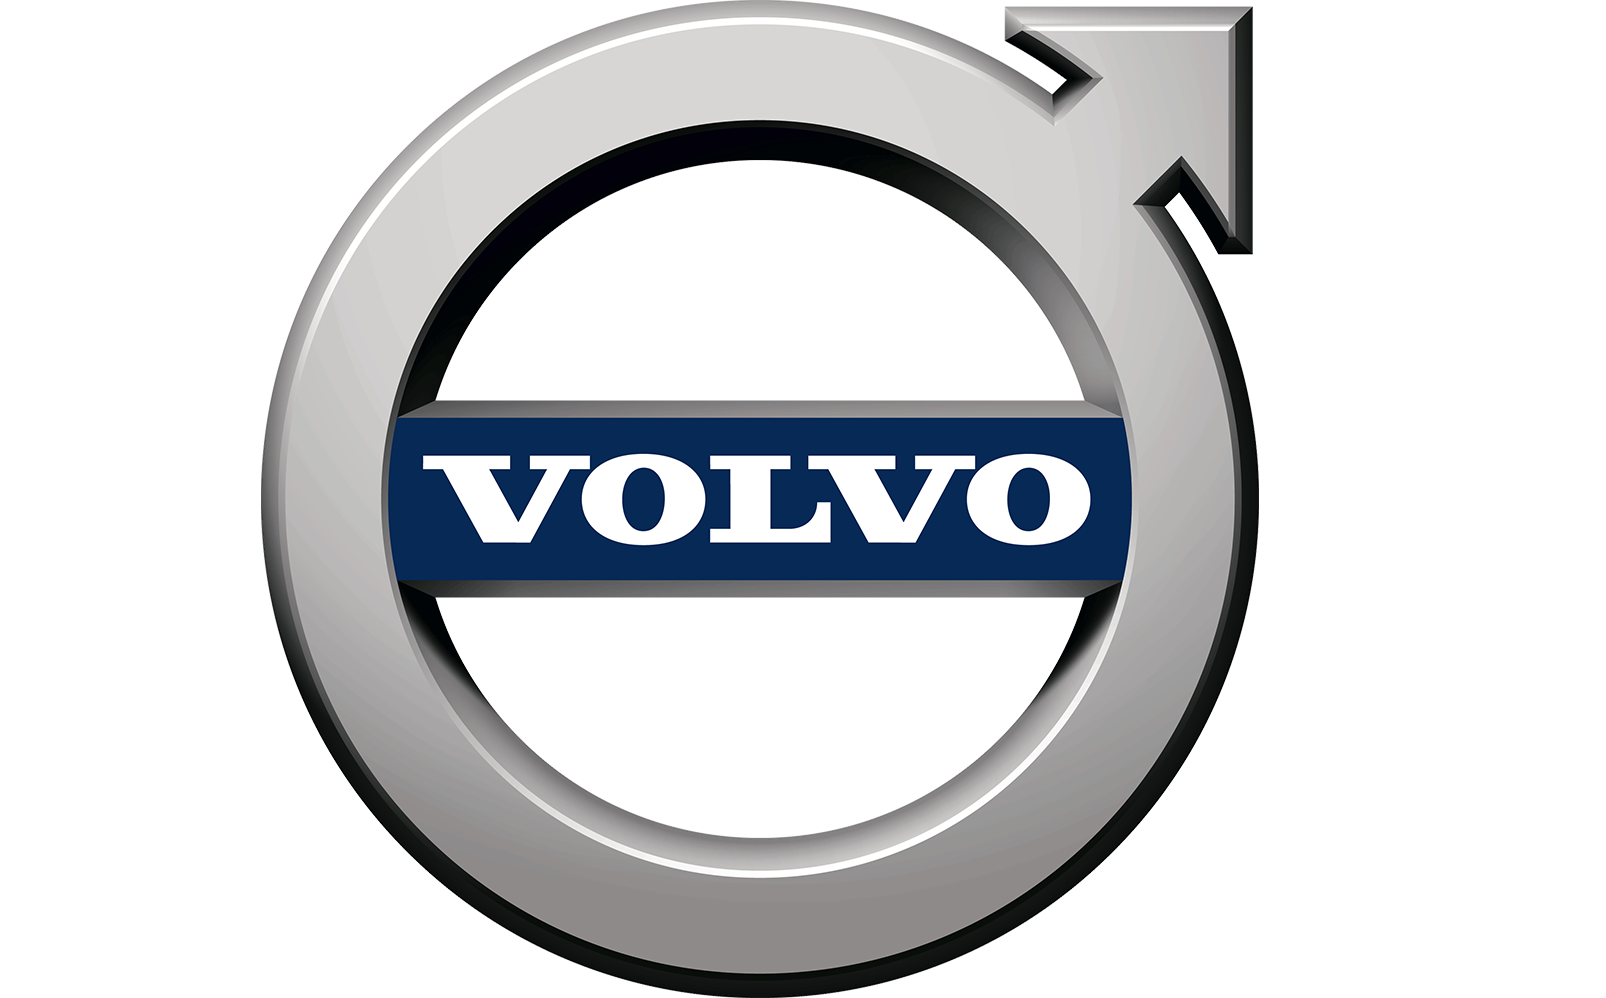 Cars com logo clipart svg black and white stock Download Ab Geely Cars Volvo Brands Logo Clipart PNG Free ... svg black and white stock